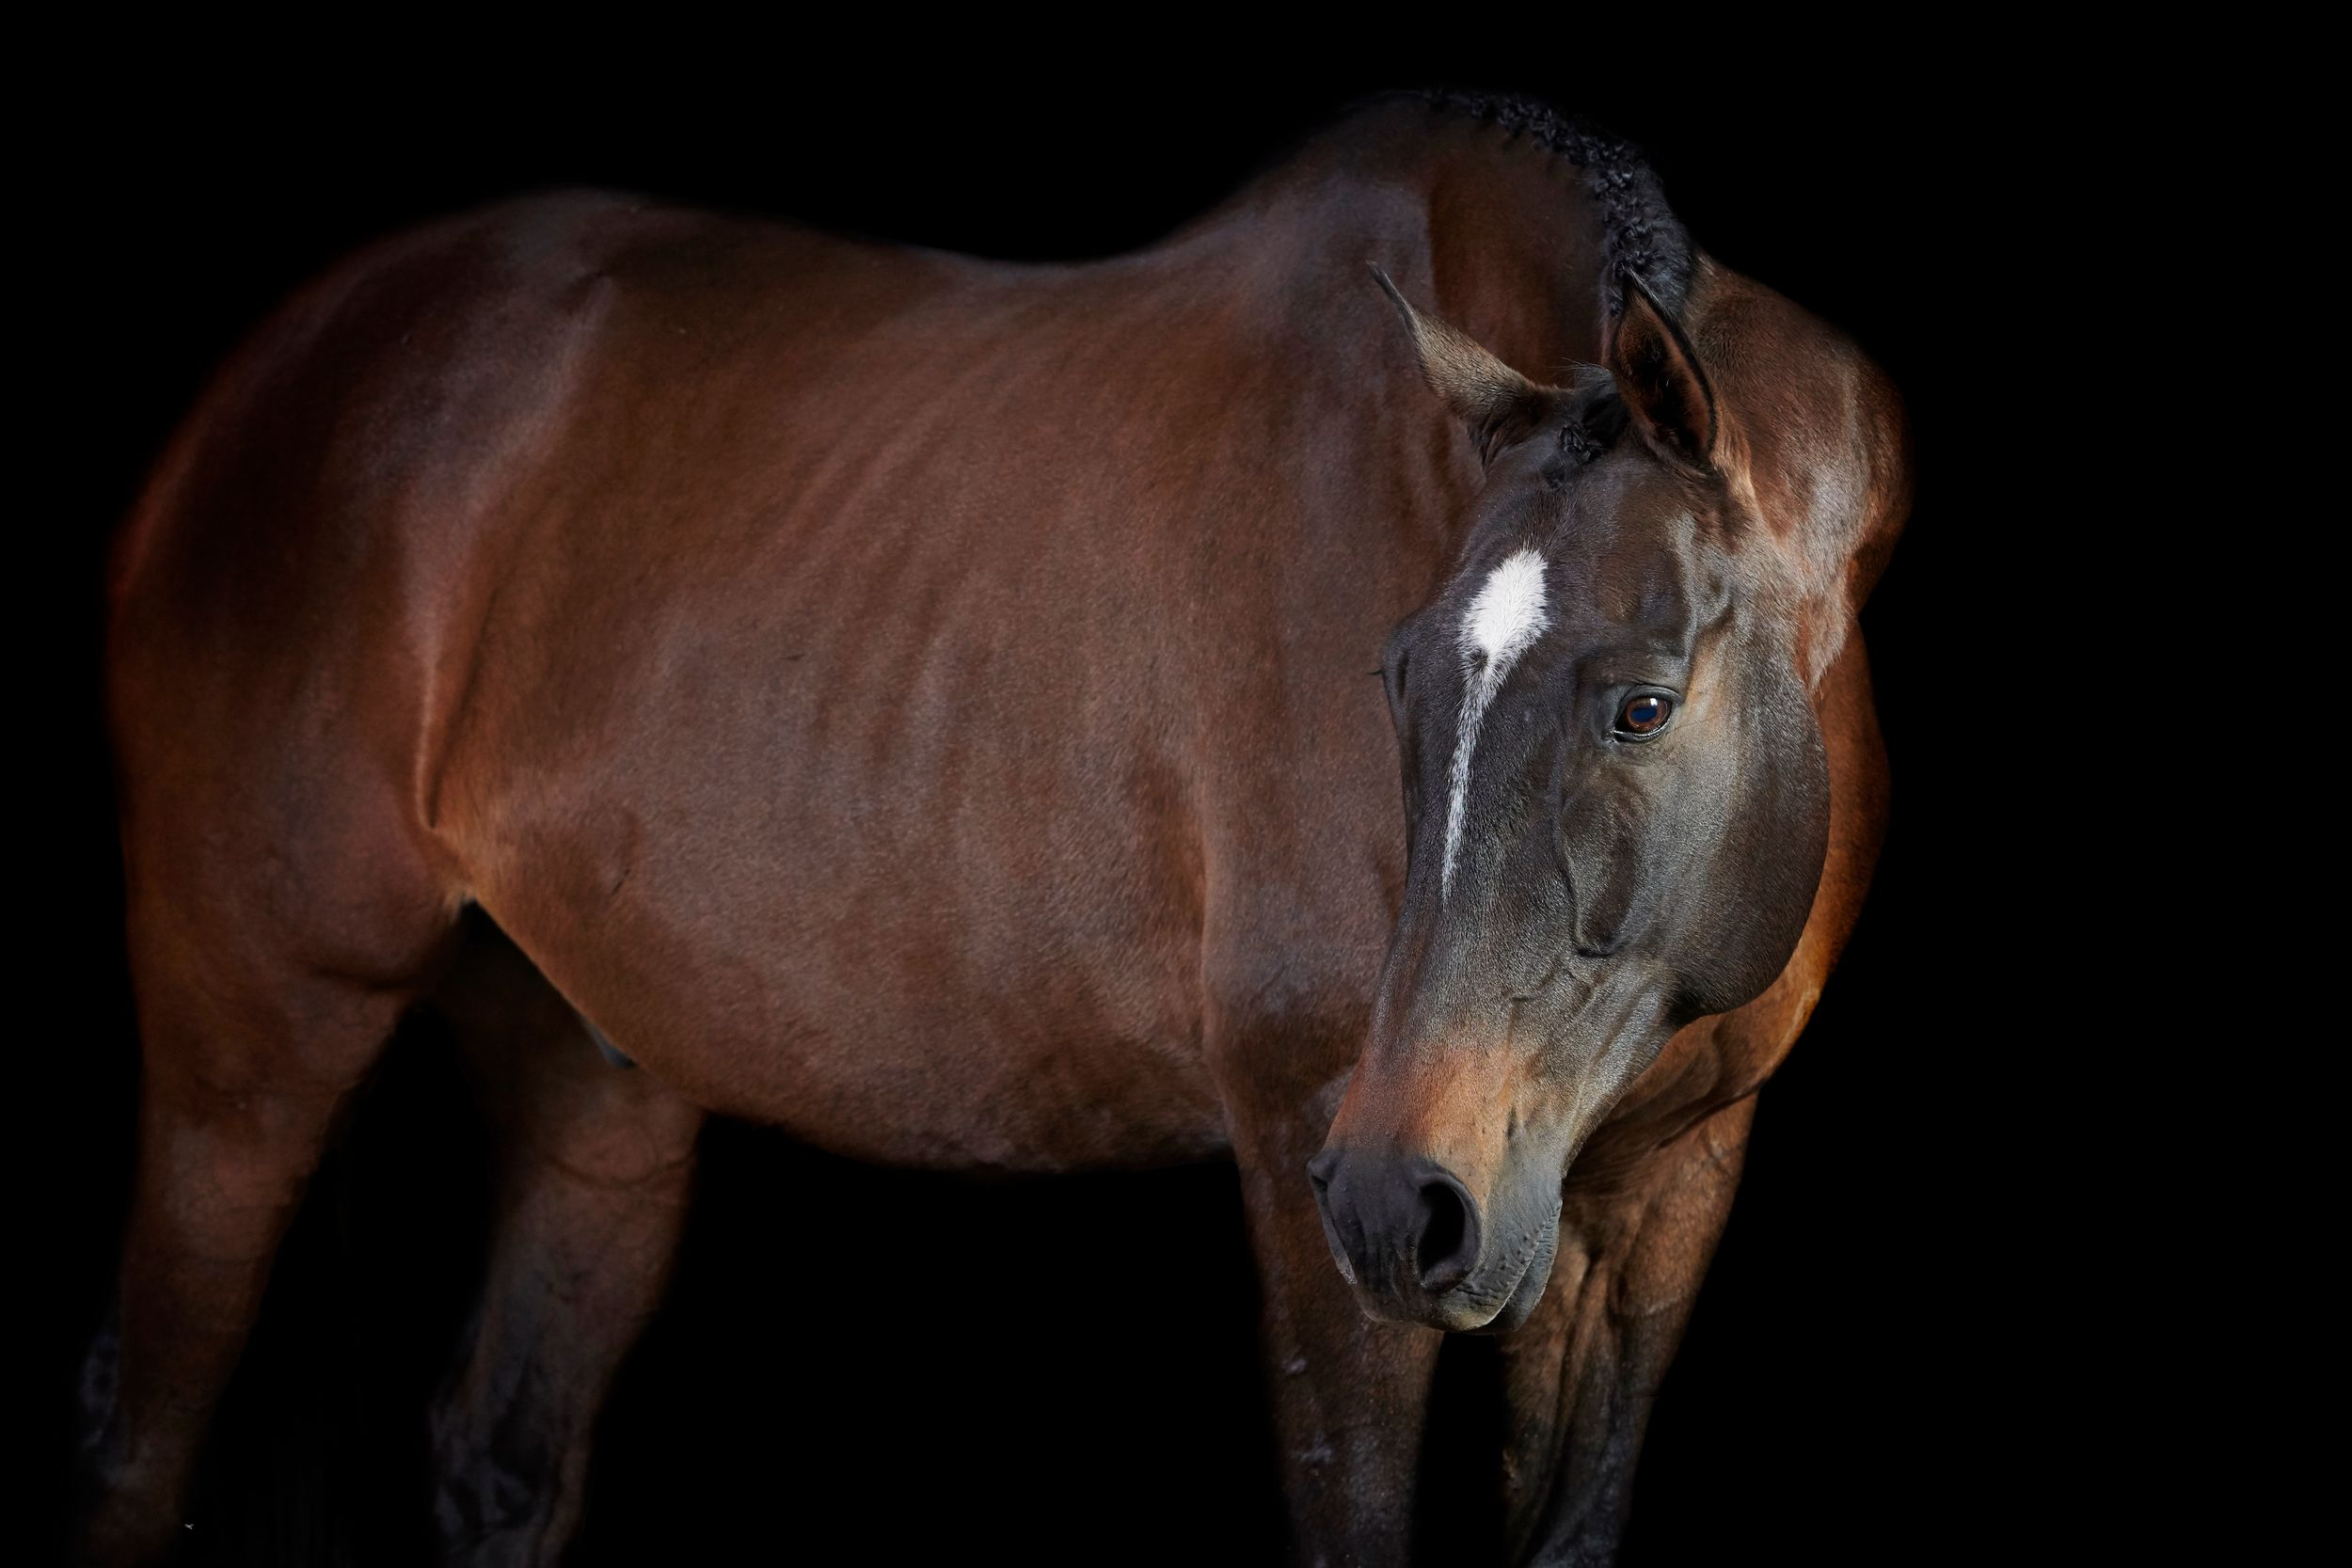 Bay thoroughbred horse in black background studio portrait